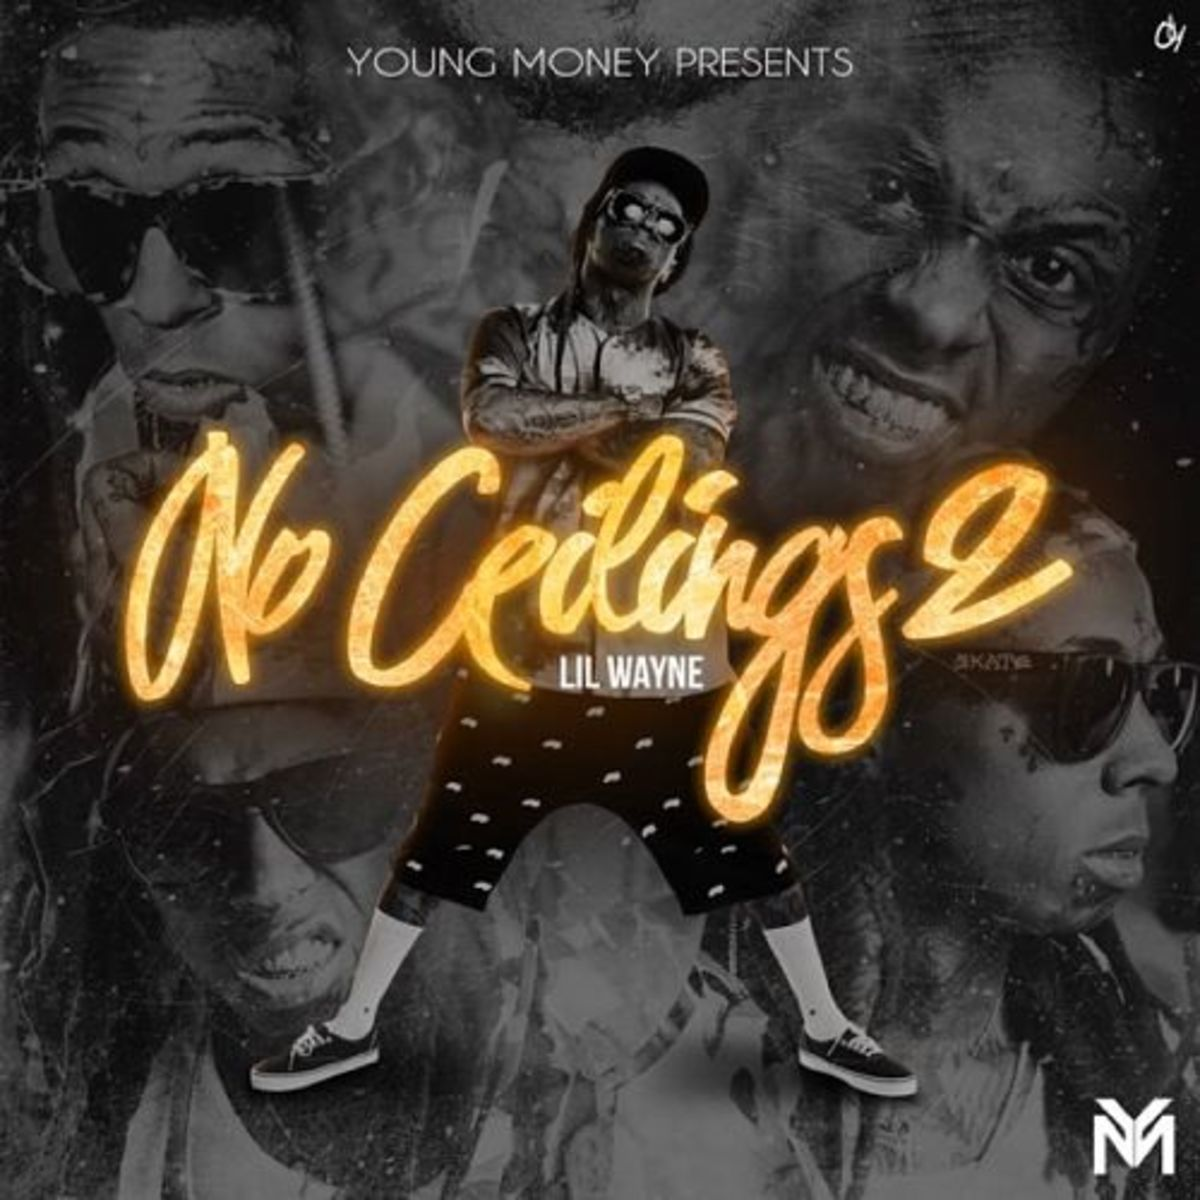 lil-wayne-no-ceilings-2.jpg